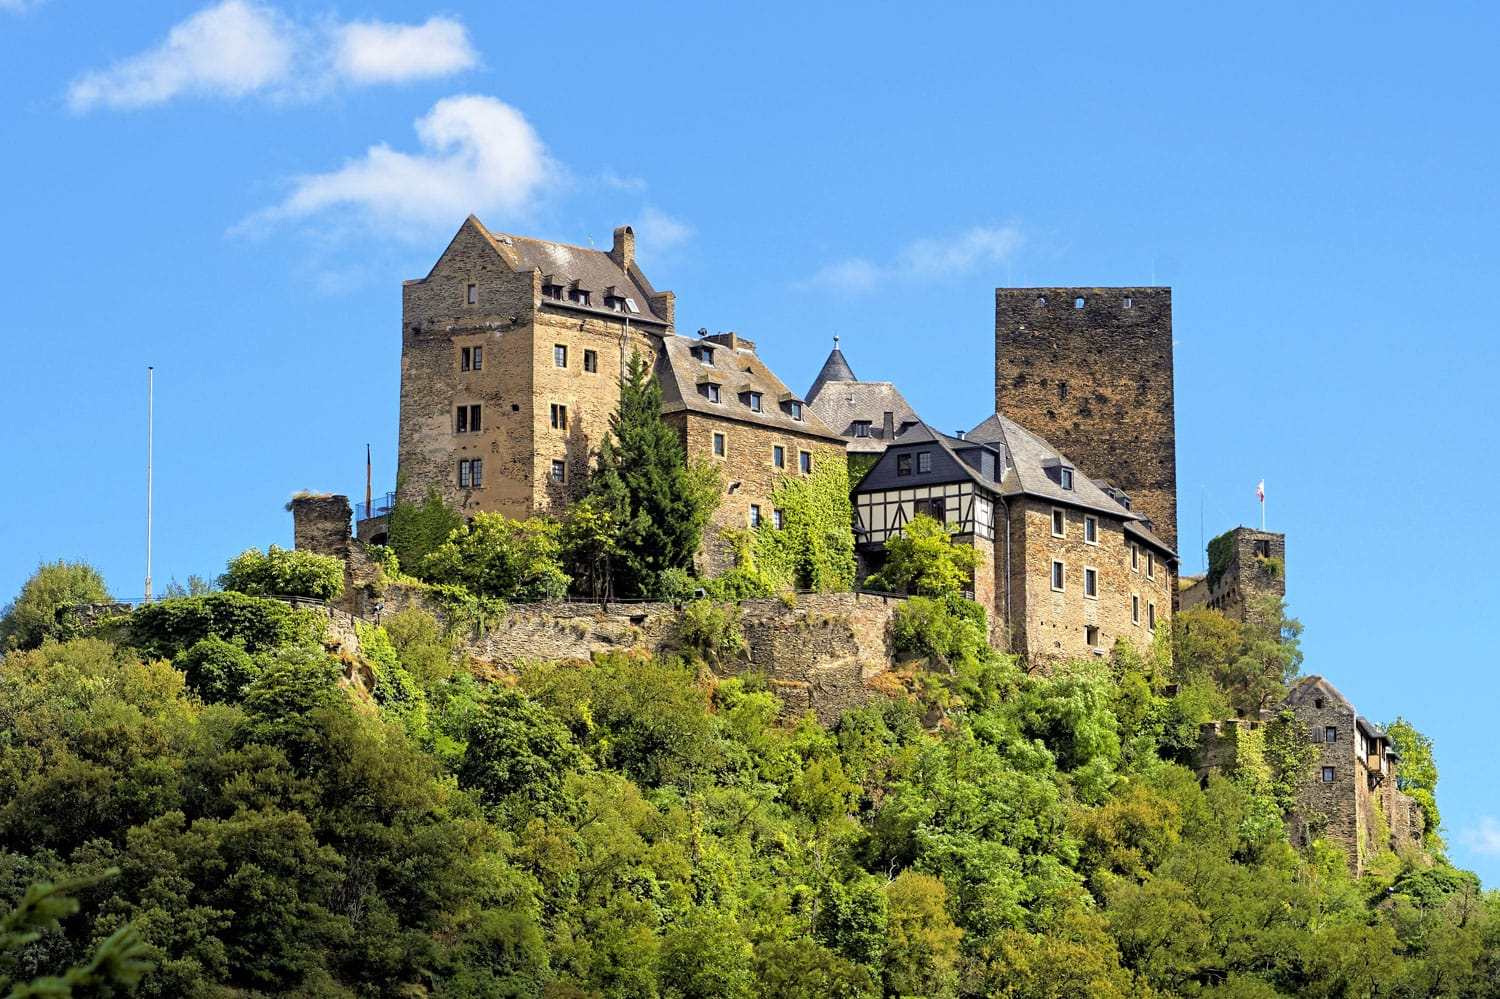 Castle Schoenburg Oberwesel, Germany